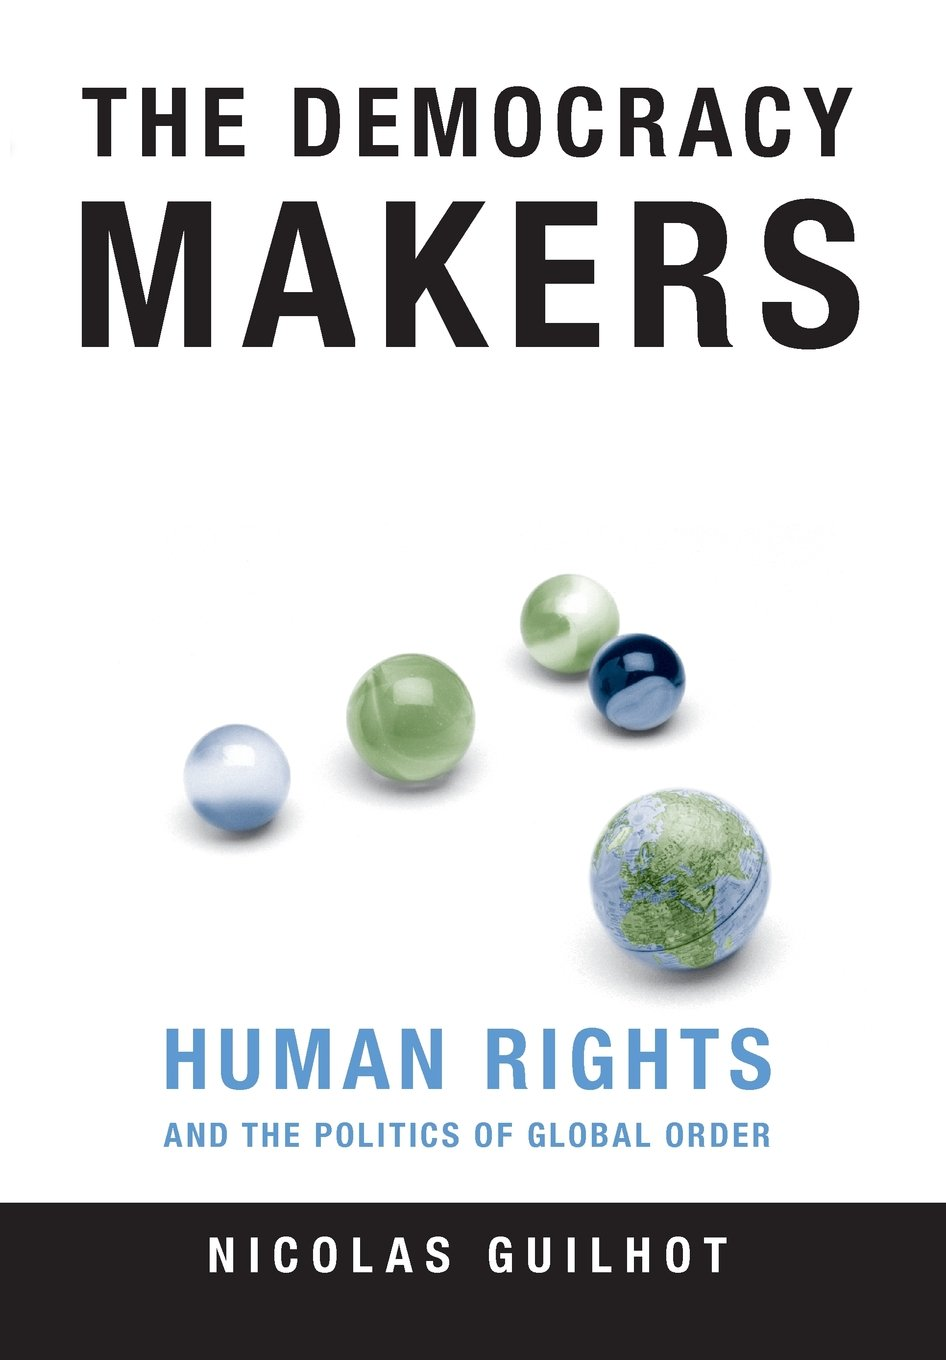 The democracy makers : human rights & international order